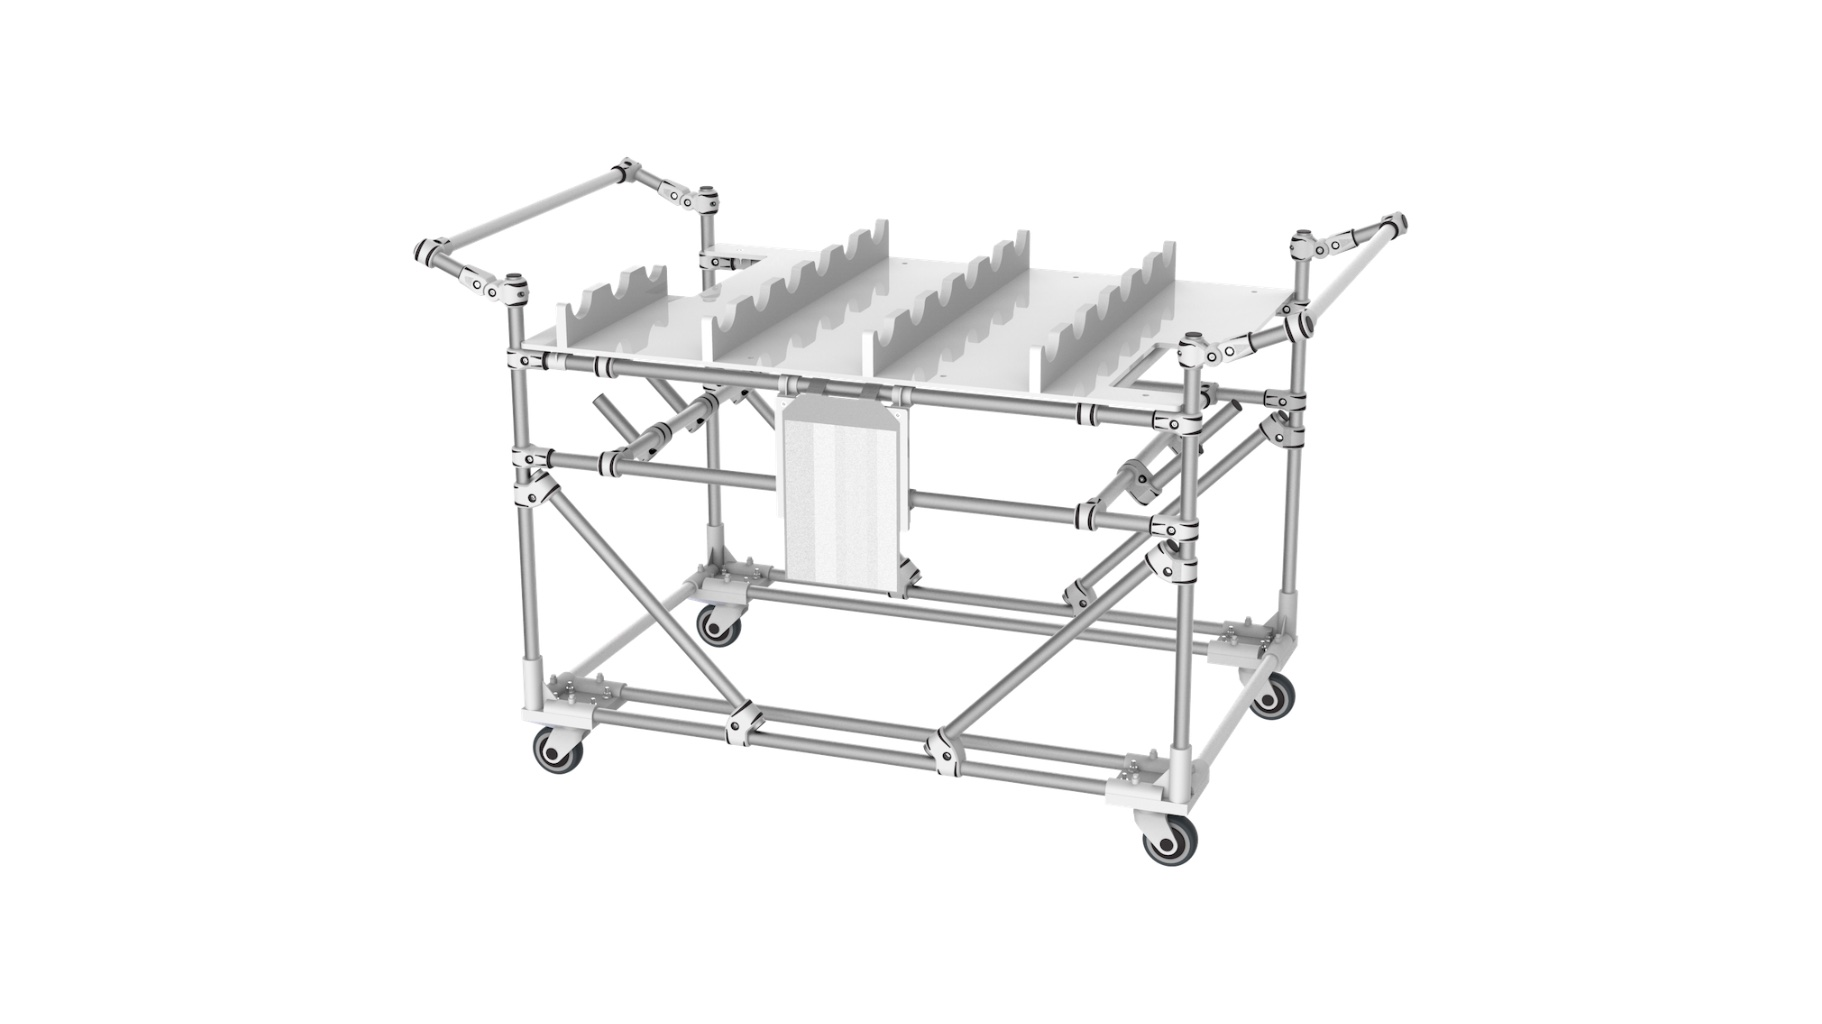 Aerospace - Trolley for the transport and storage of lighting parts for aeronautics.